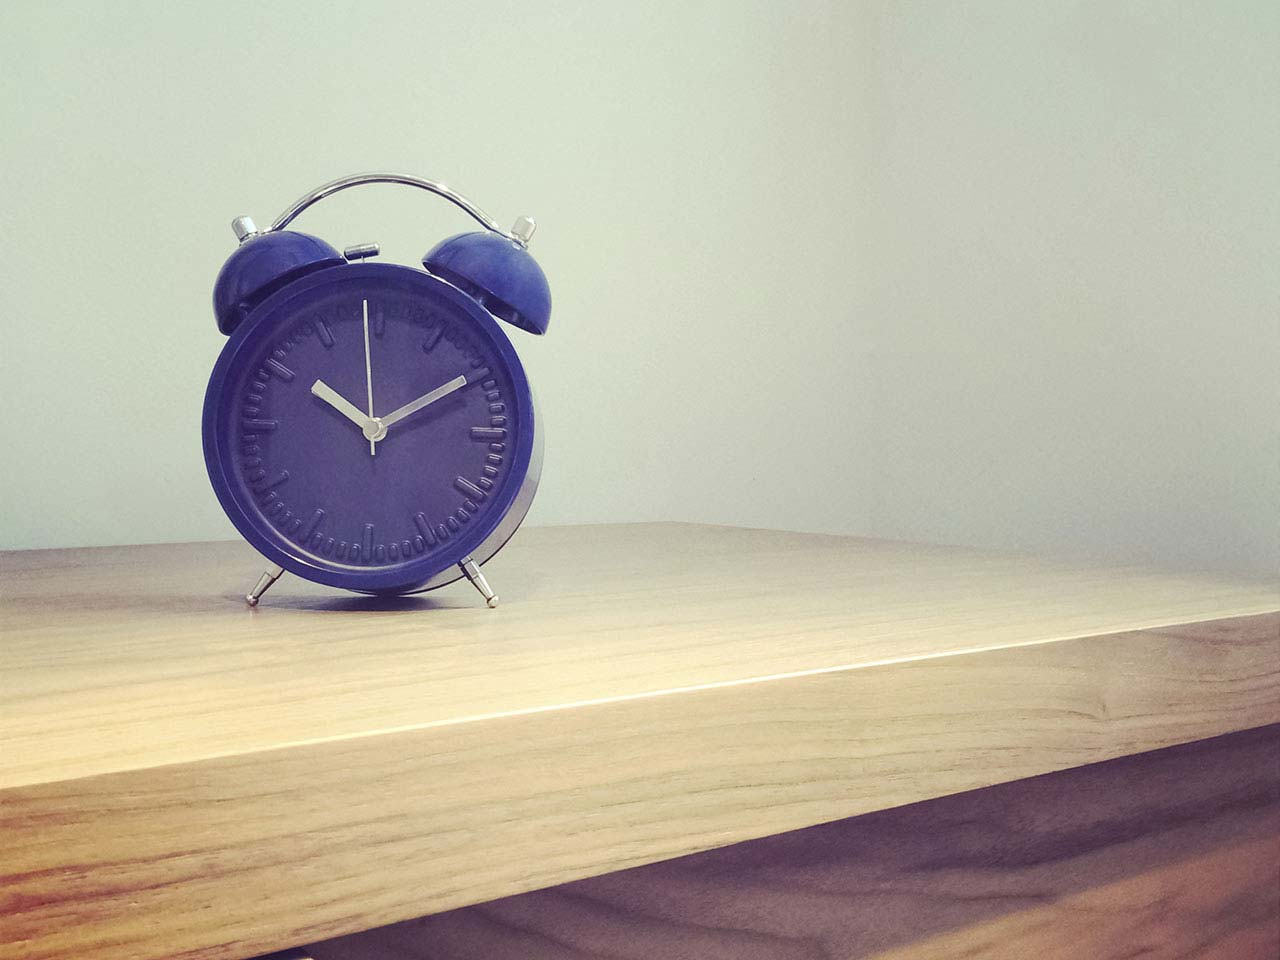 Retro looking alarm clock